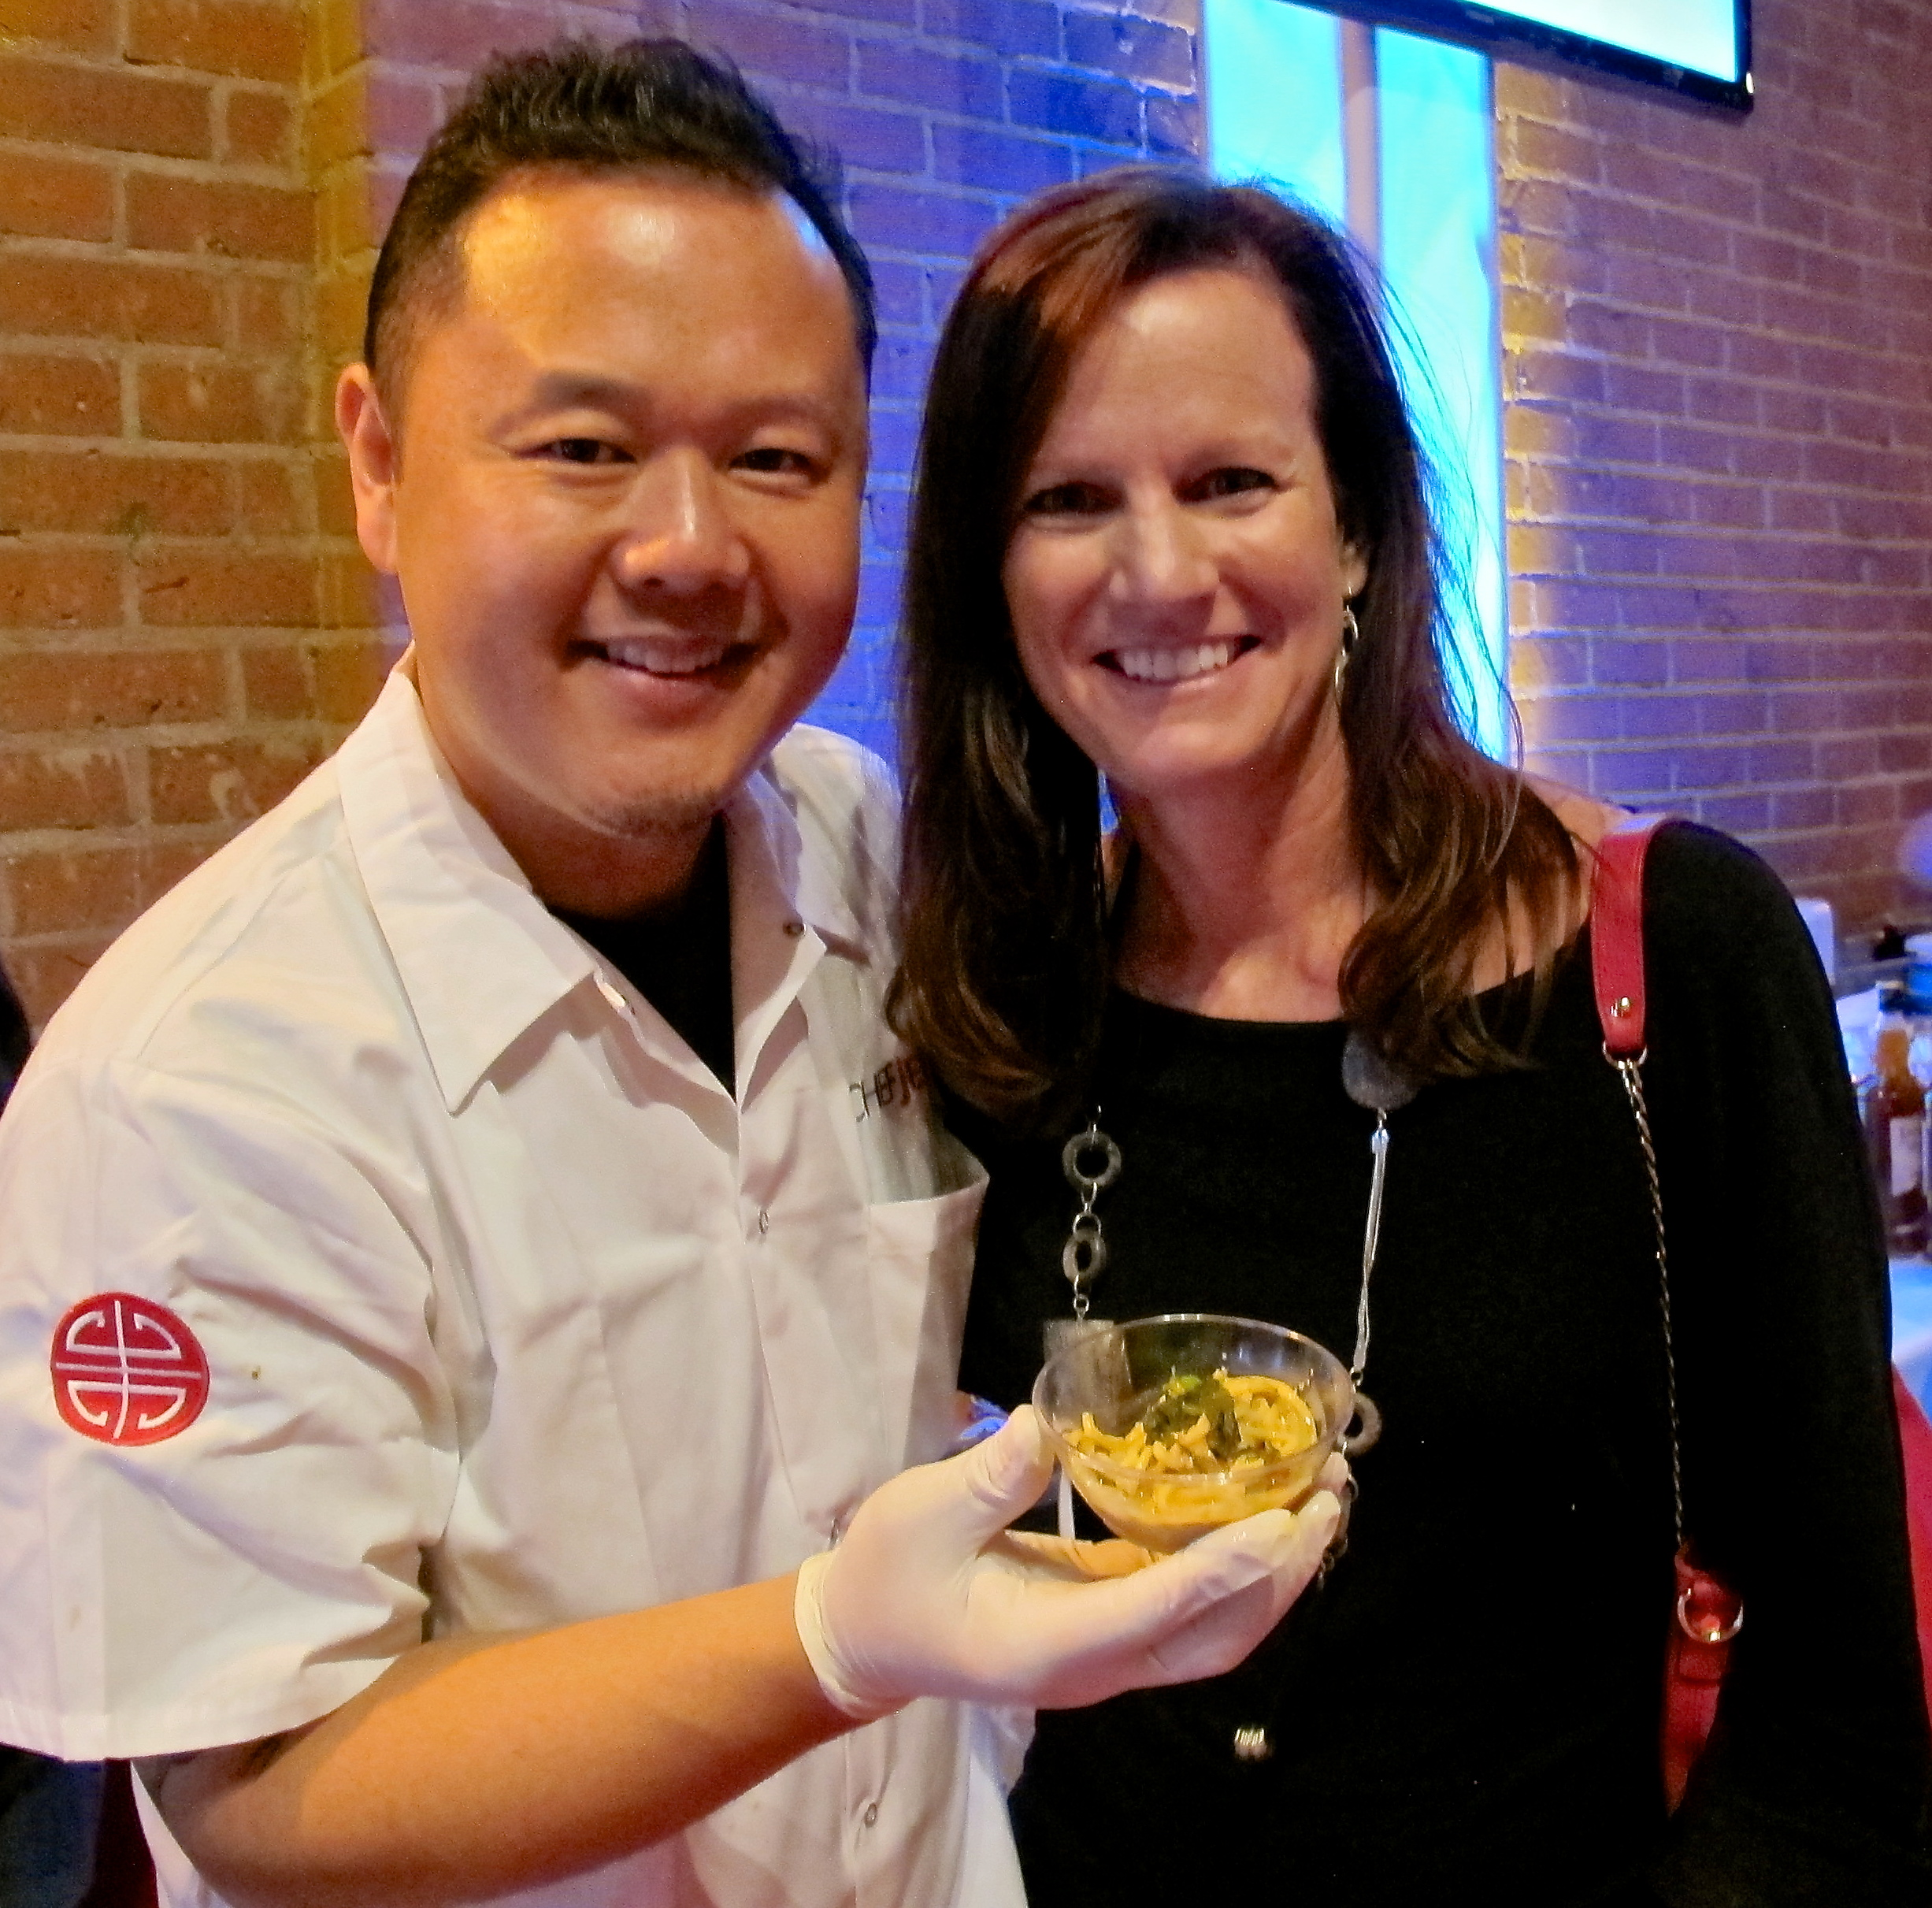 Chef Jet Tila and I with his curry noodle soup